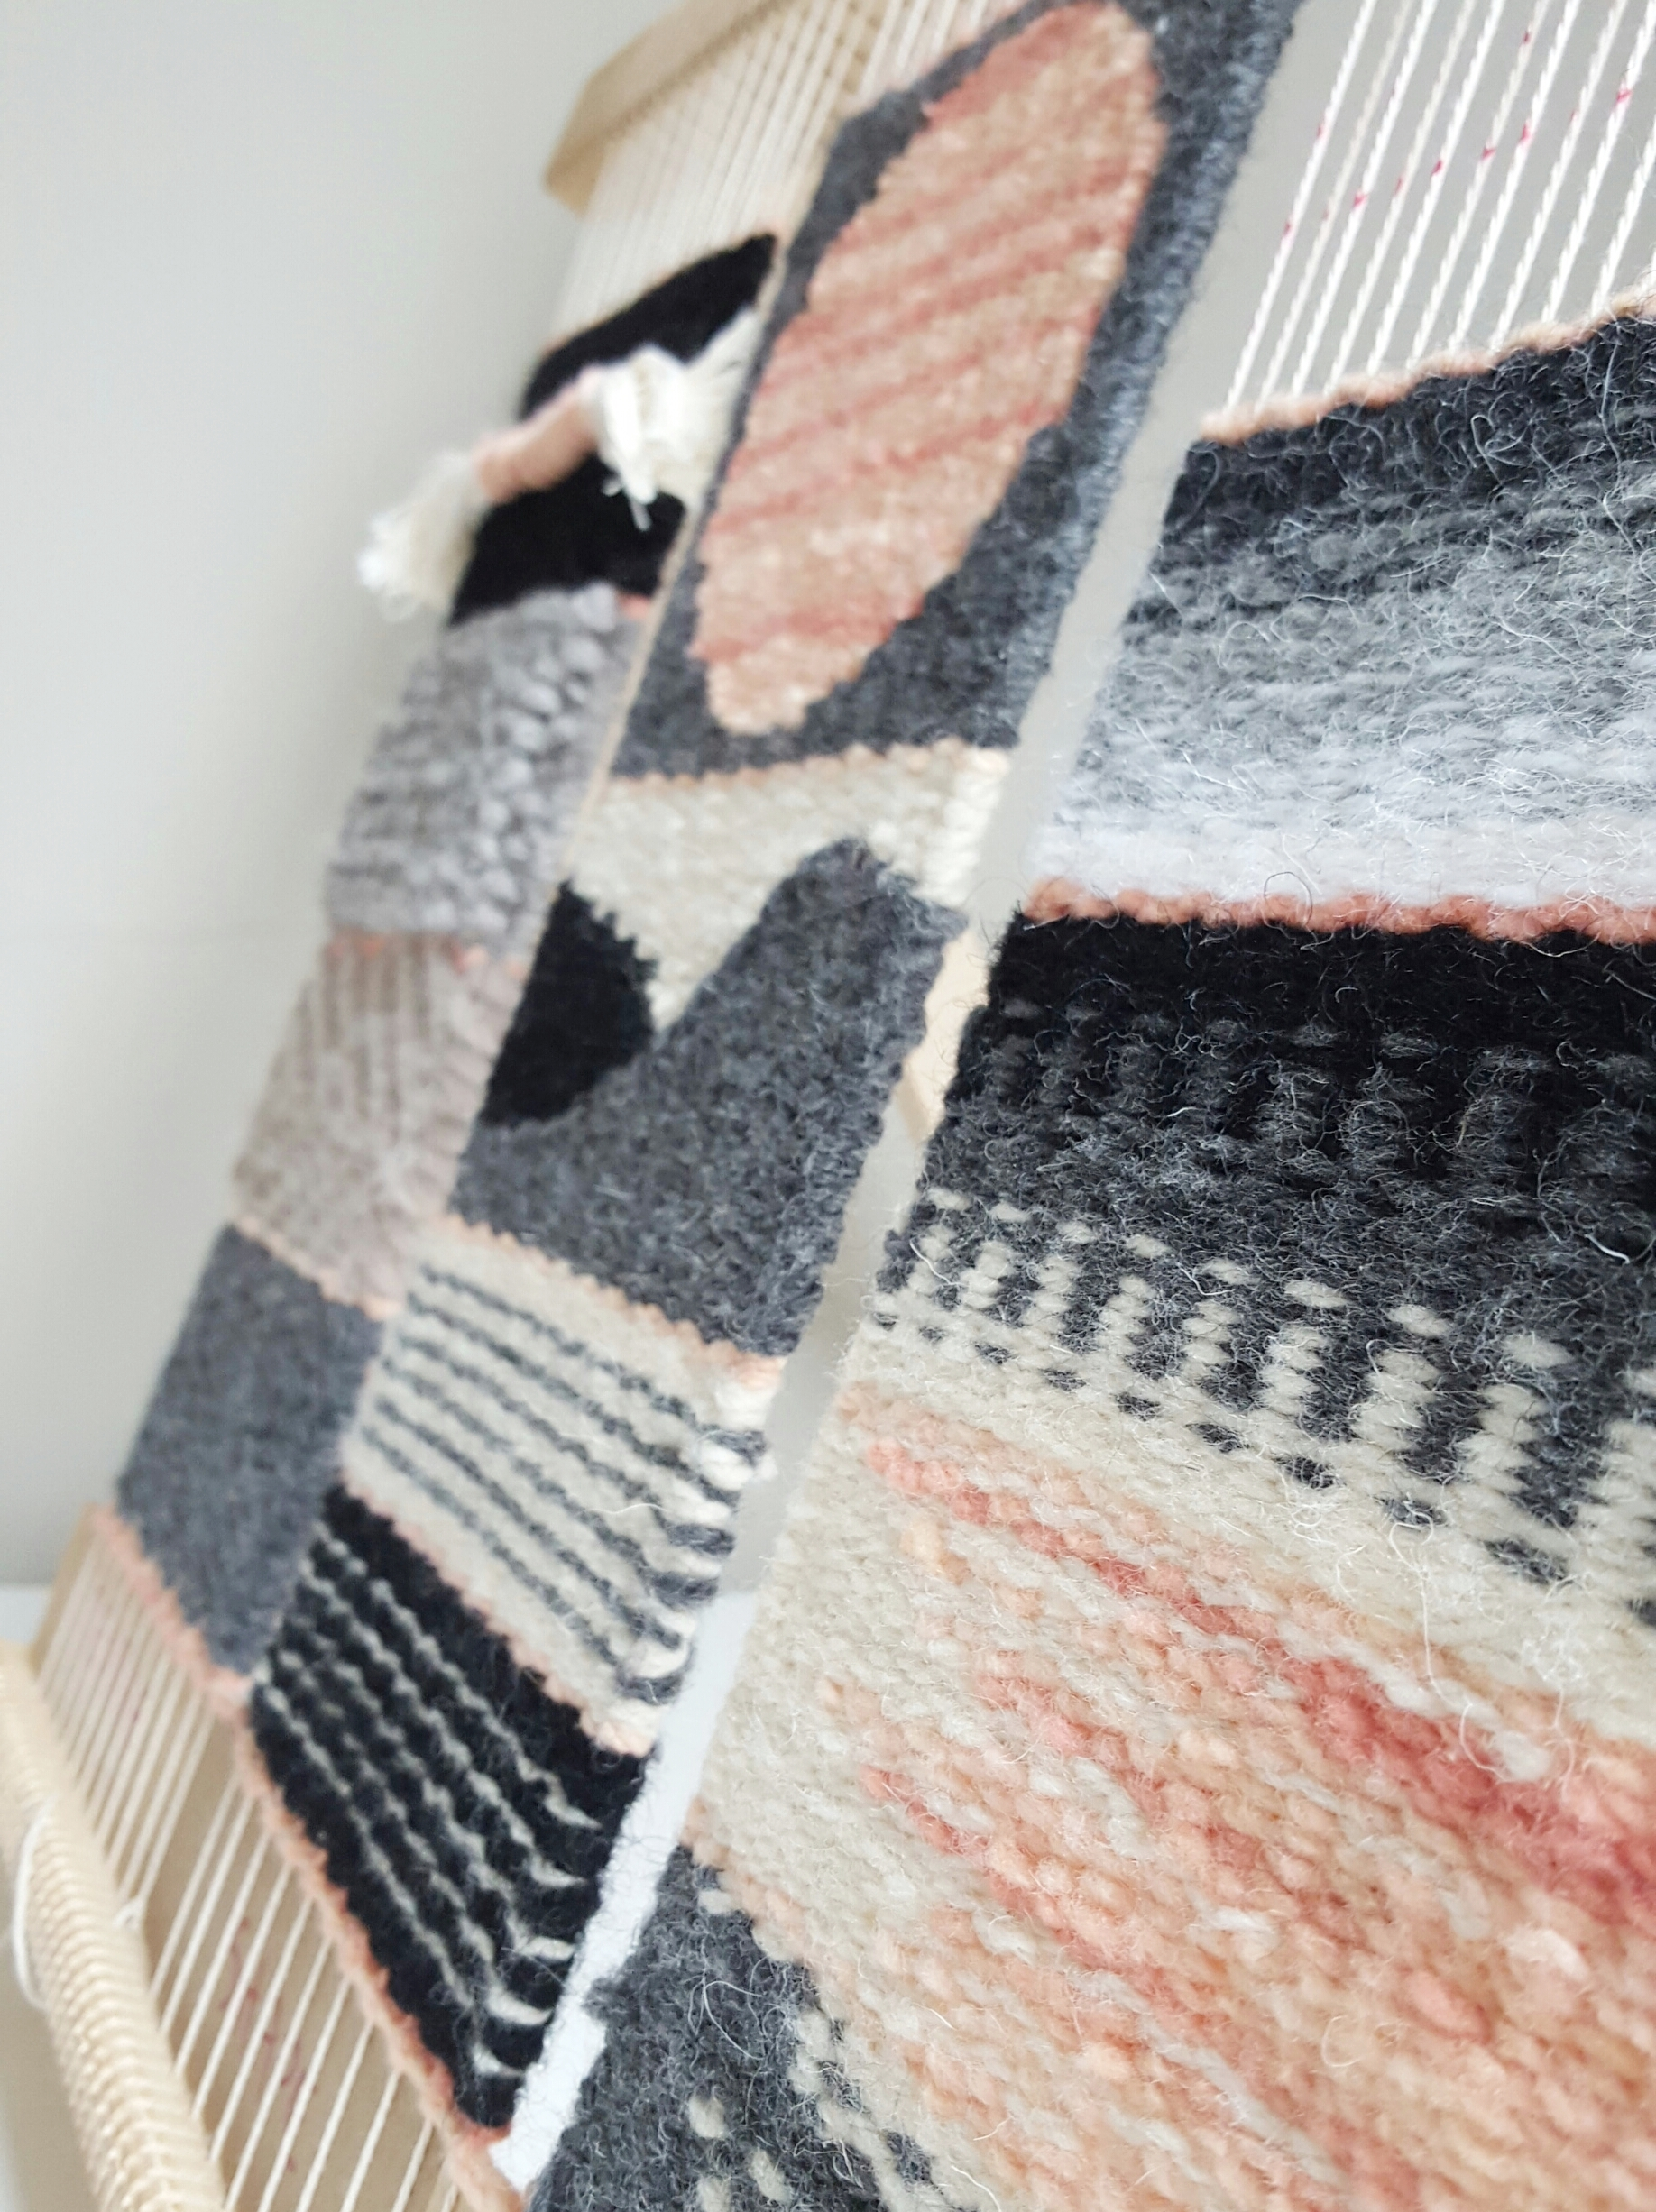 Copy of Learn to weave - beginner and intermediate weaving workshops and classes in vancouver and victoria bc with Lucy Poskitt